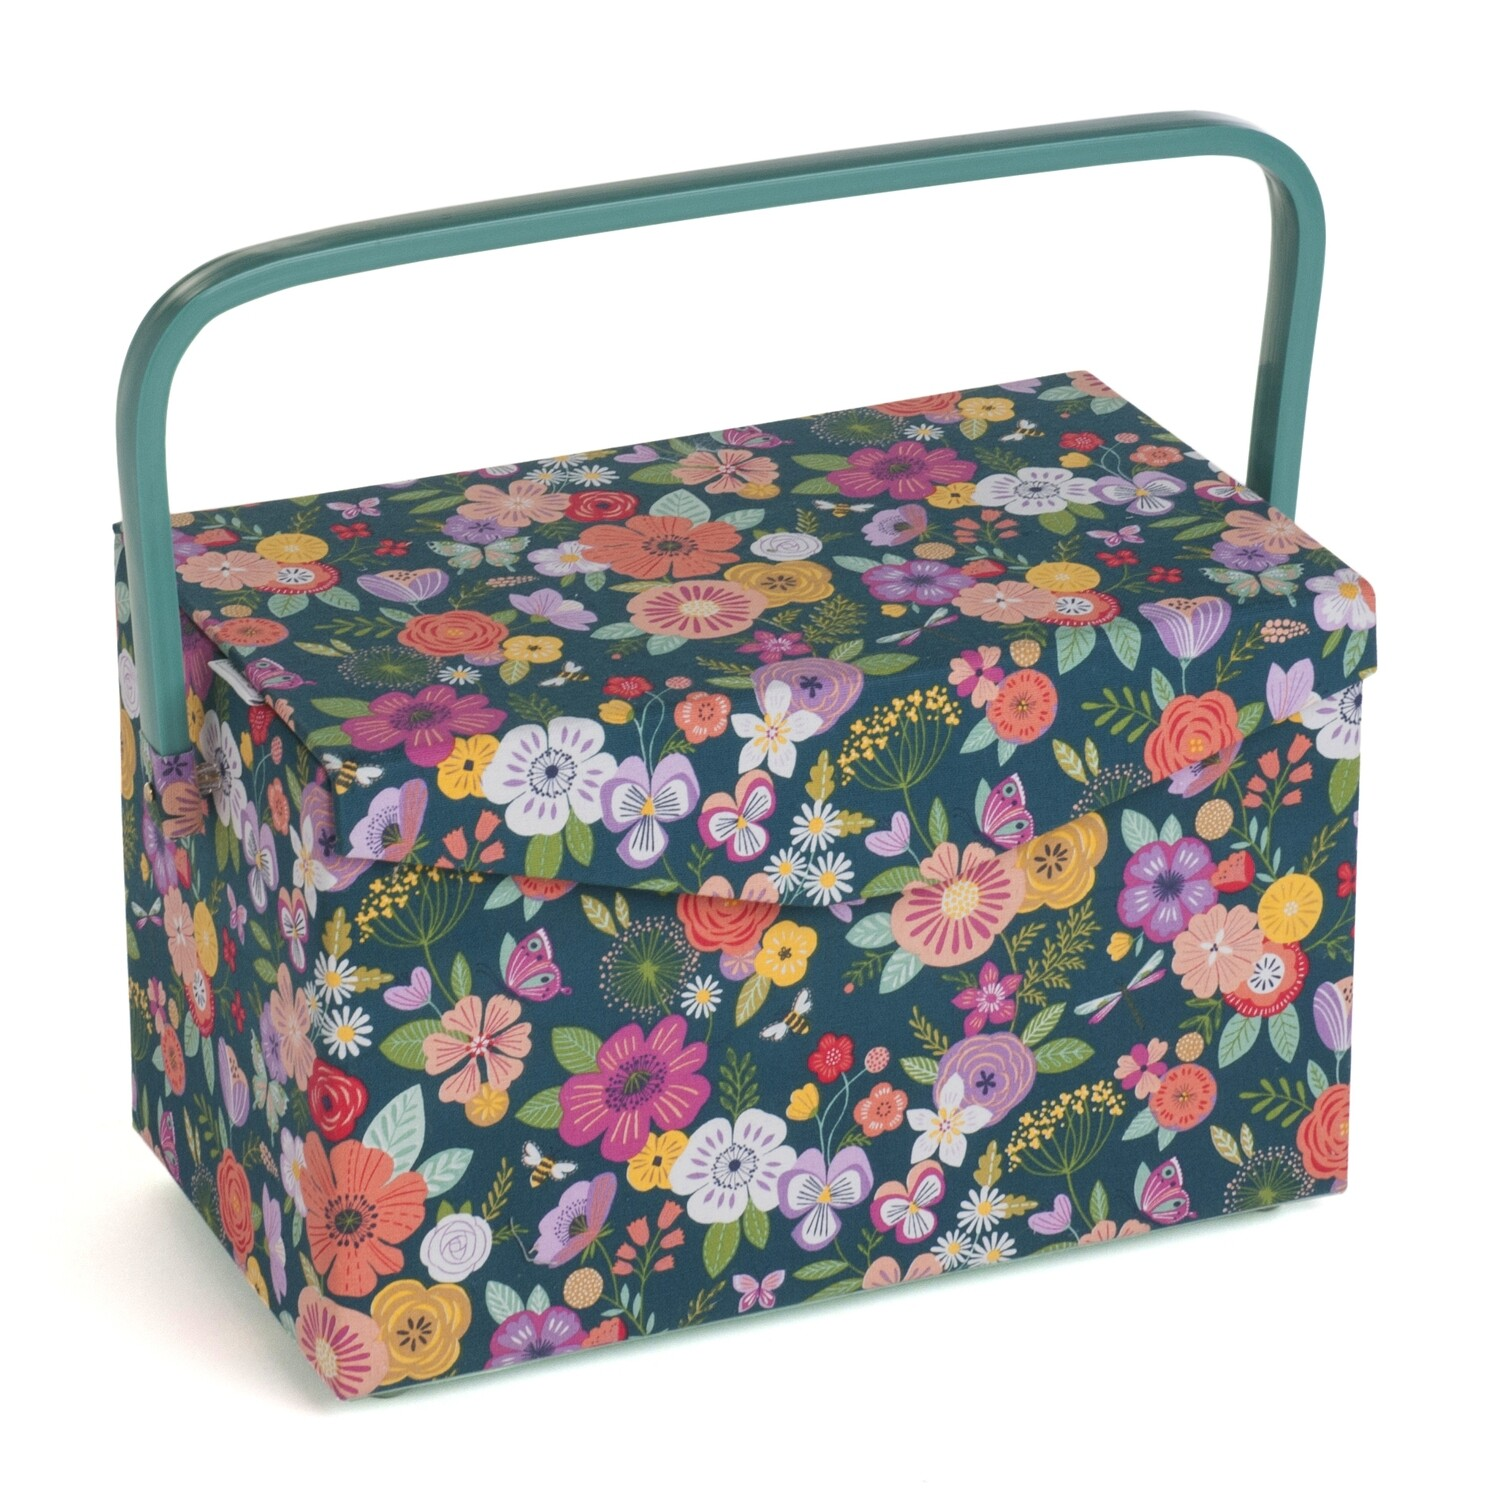 Sewing Box fold over lid Medium - Floral Garden Teal